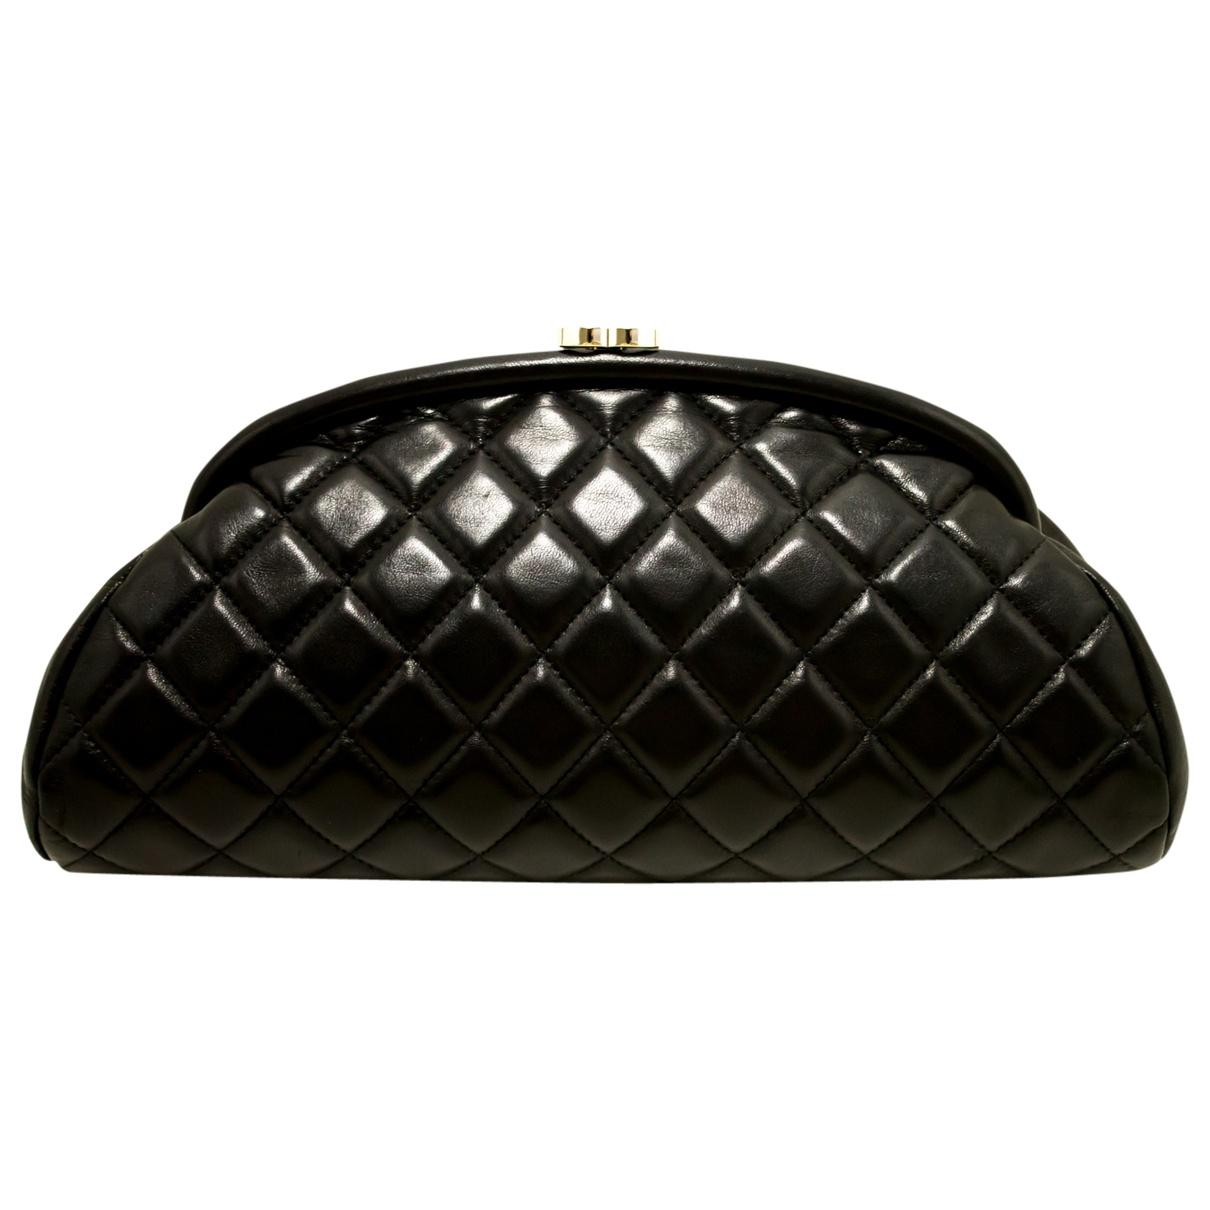 32c6ceafd38e Chanel. Women's Pre-owned Black Leather Clutch Bags. $2,098 From Vestiaire  Collective